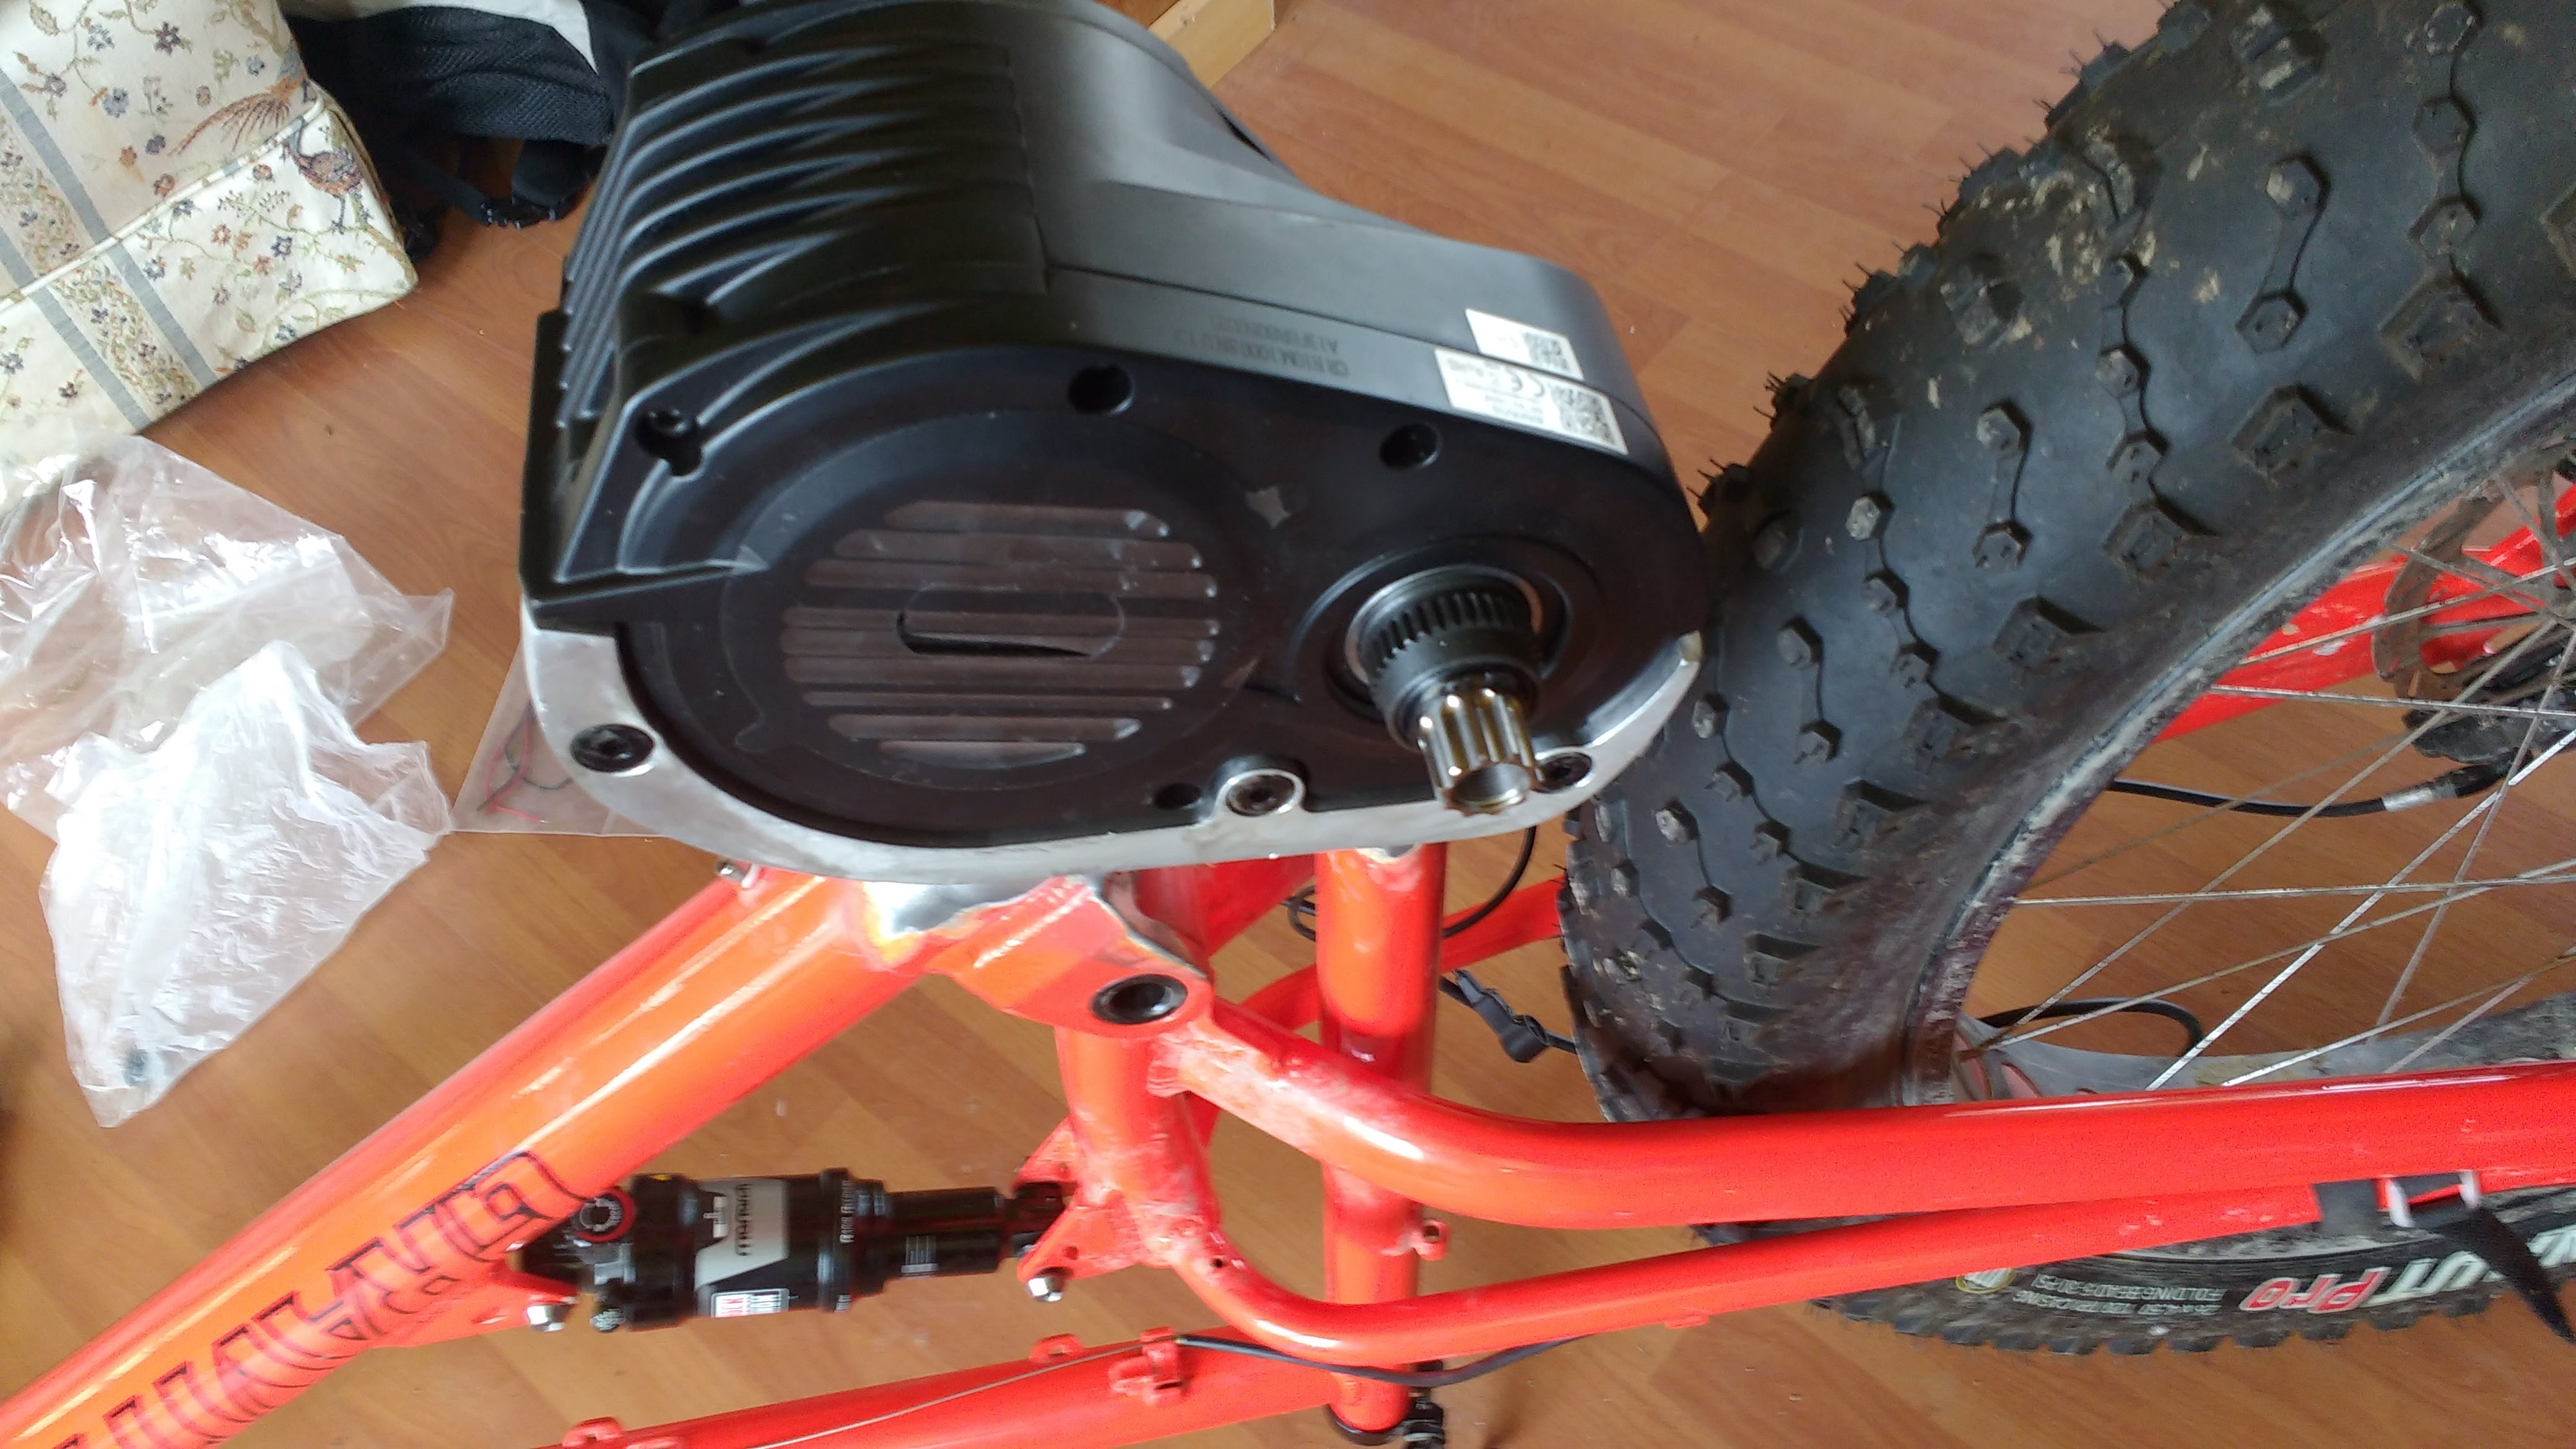 Choppy Shloppy : Build Your Own Ultra Max Specific Frame And